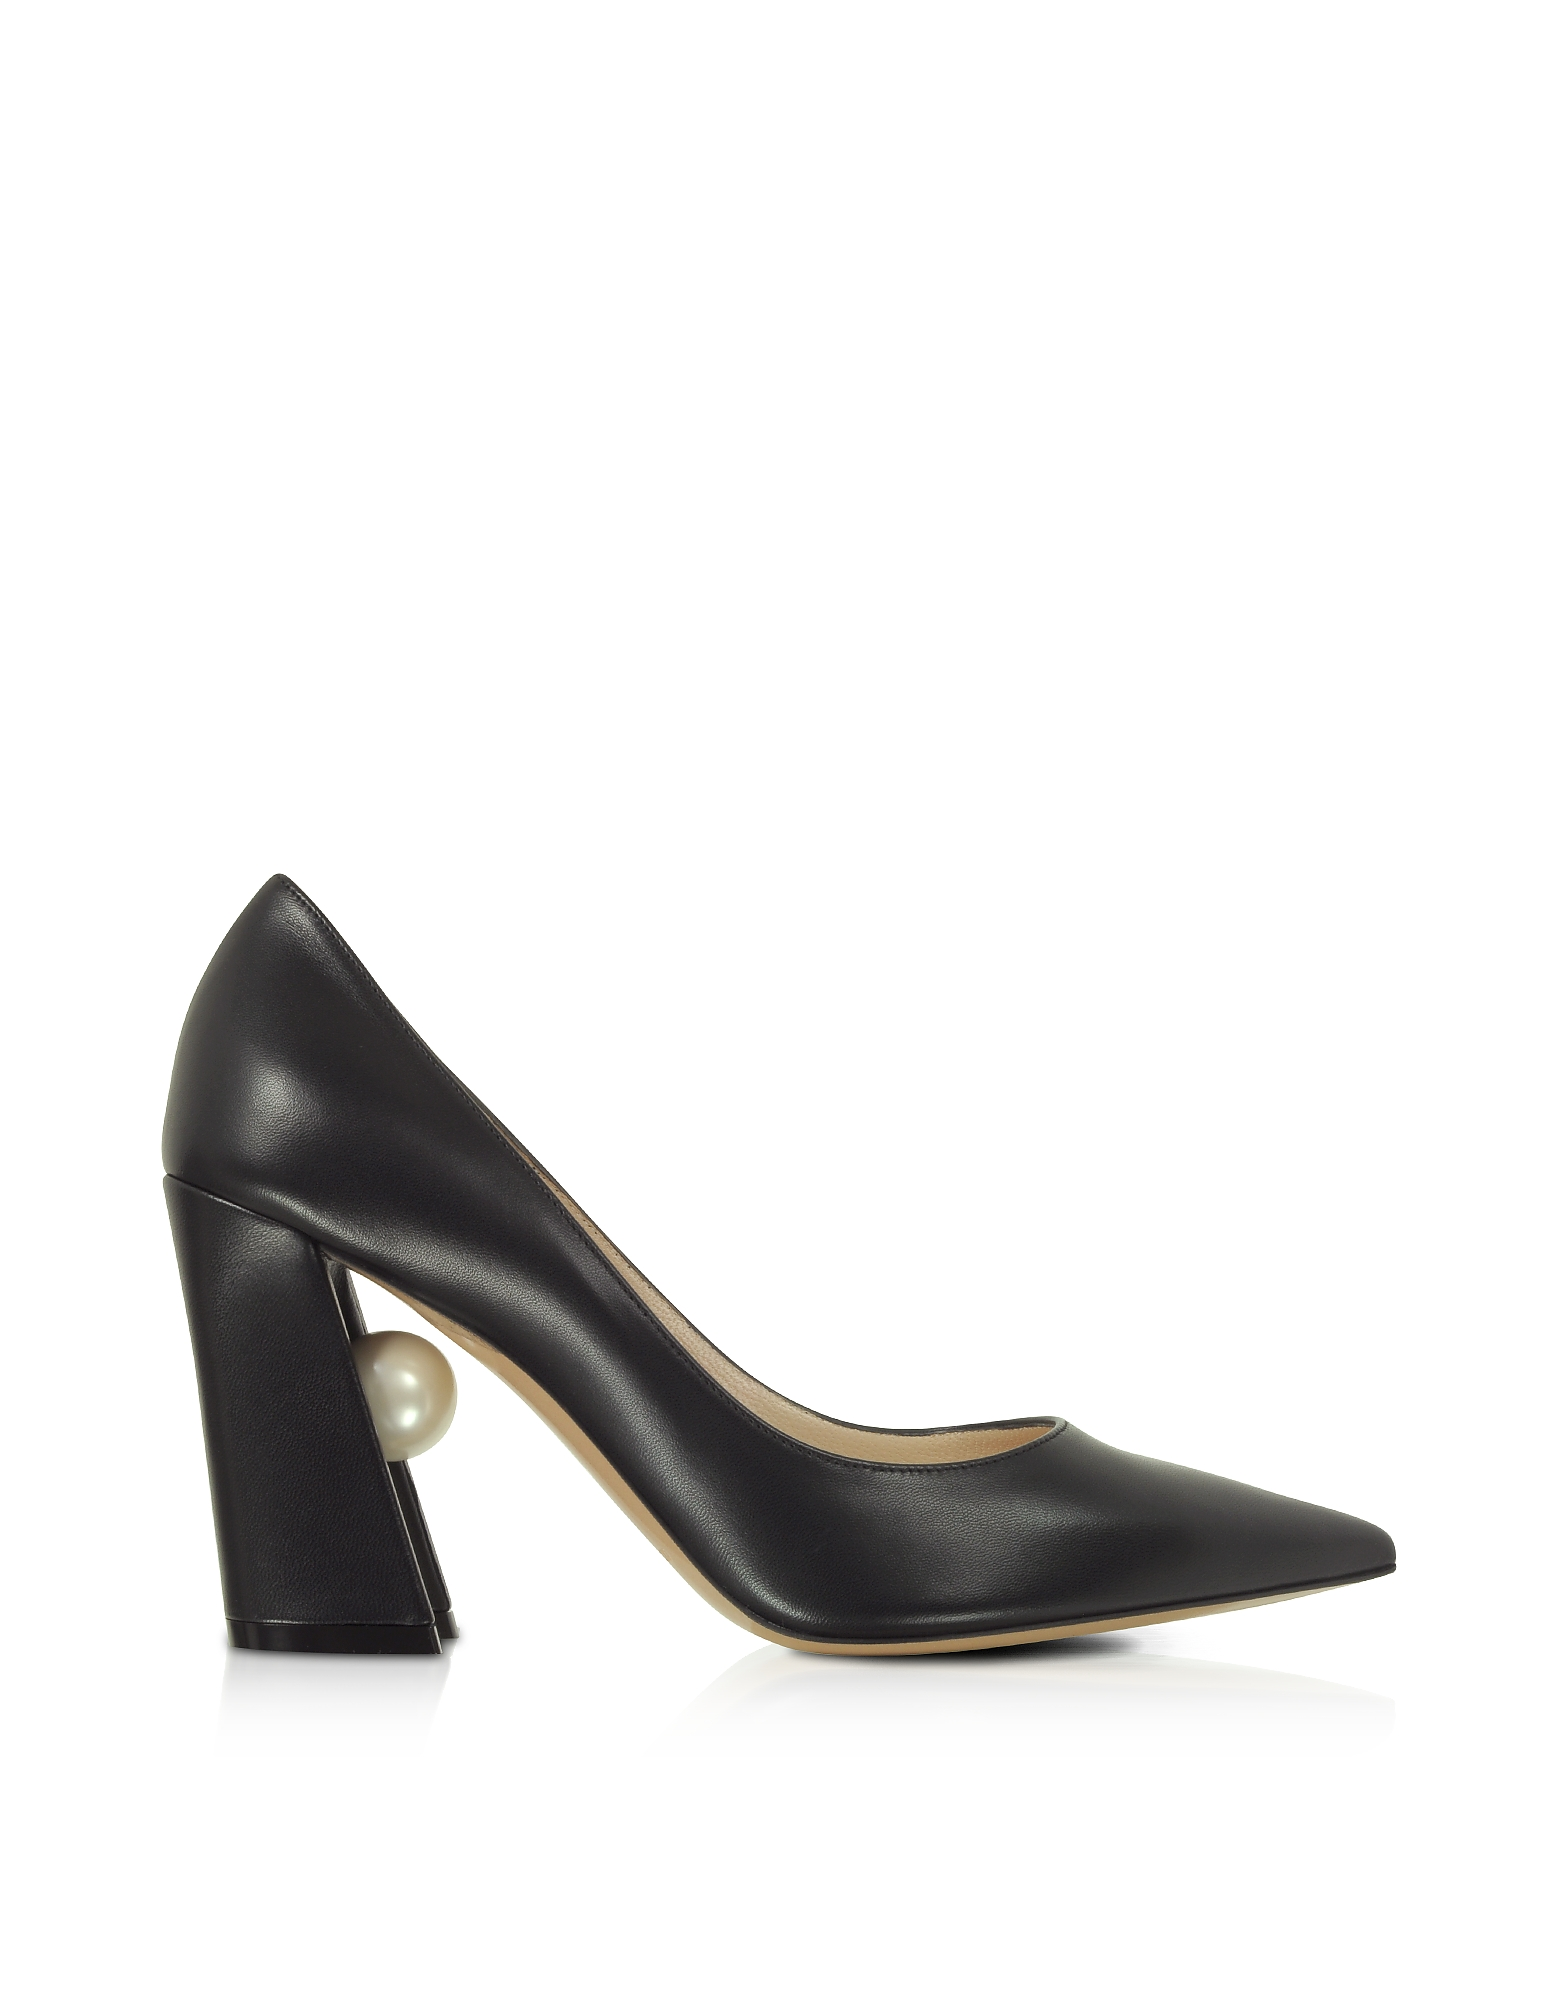 Nicholas Kirkwood Designer Shoes, Black Nappa Leather 90mm Miri Pumps